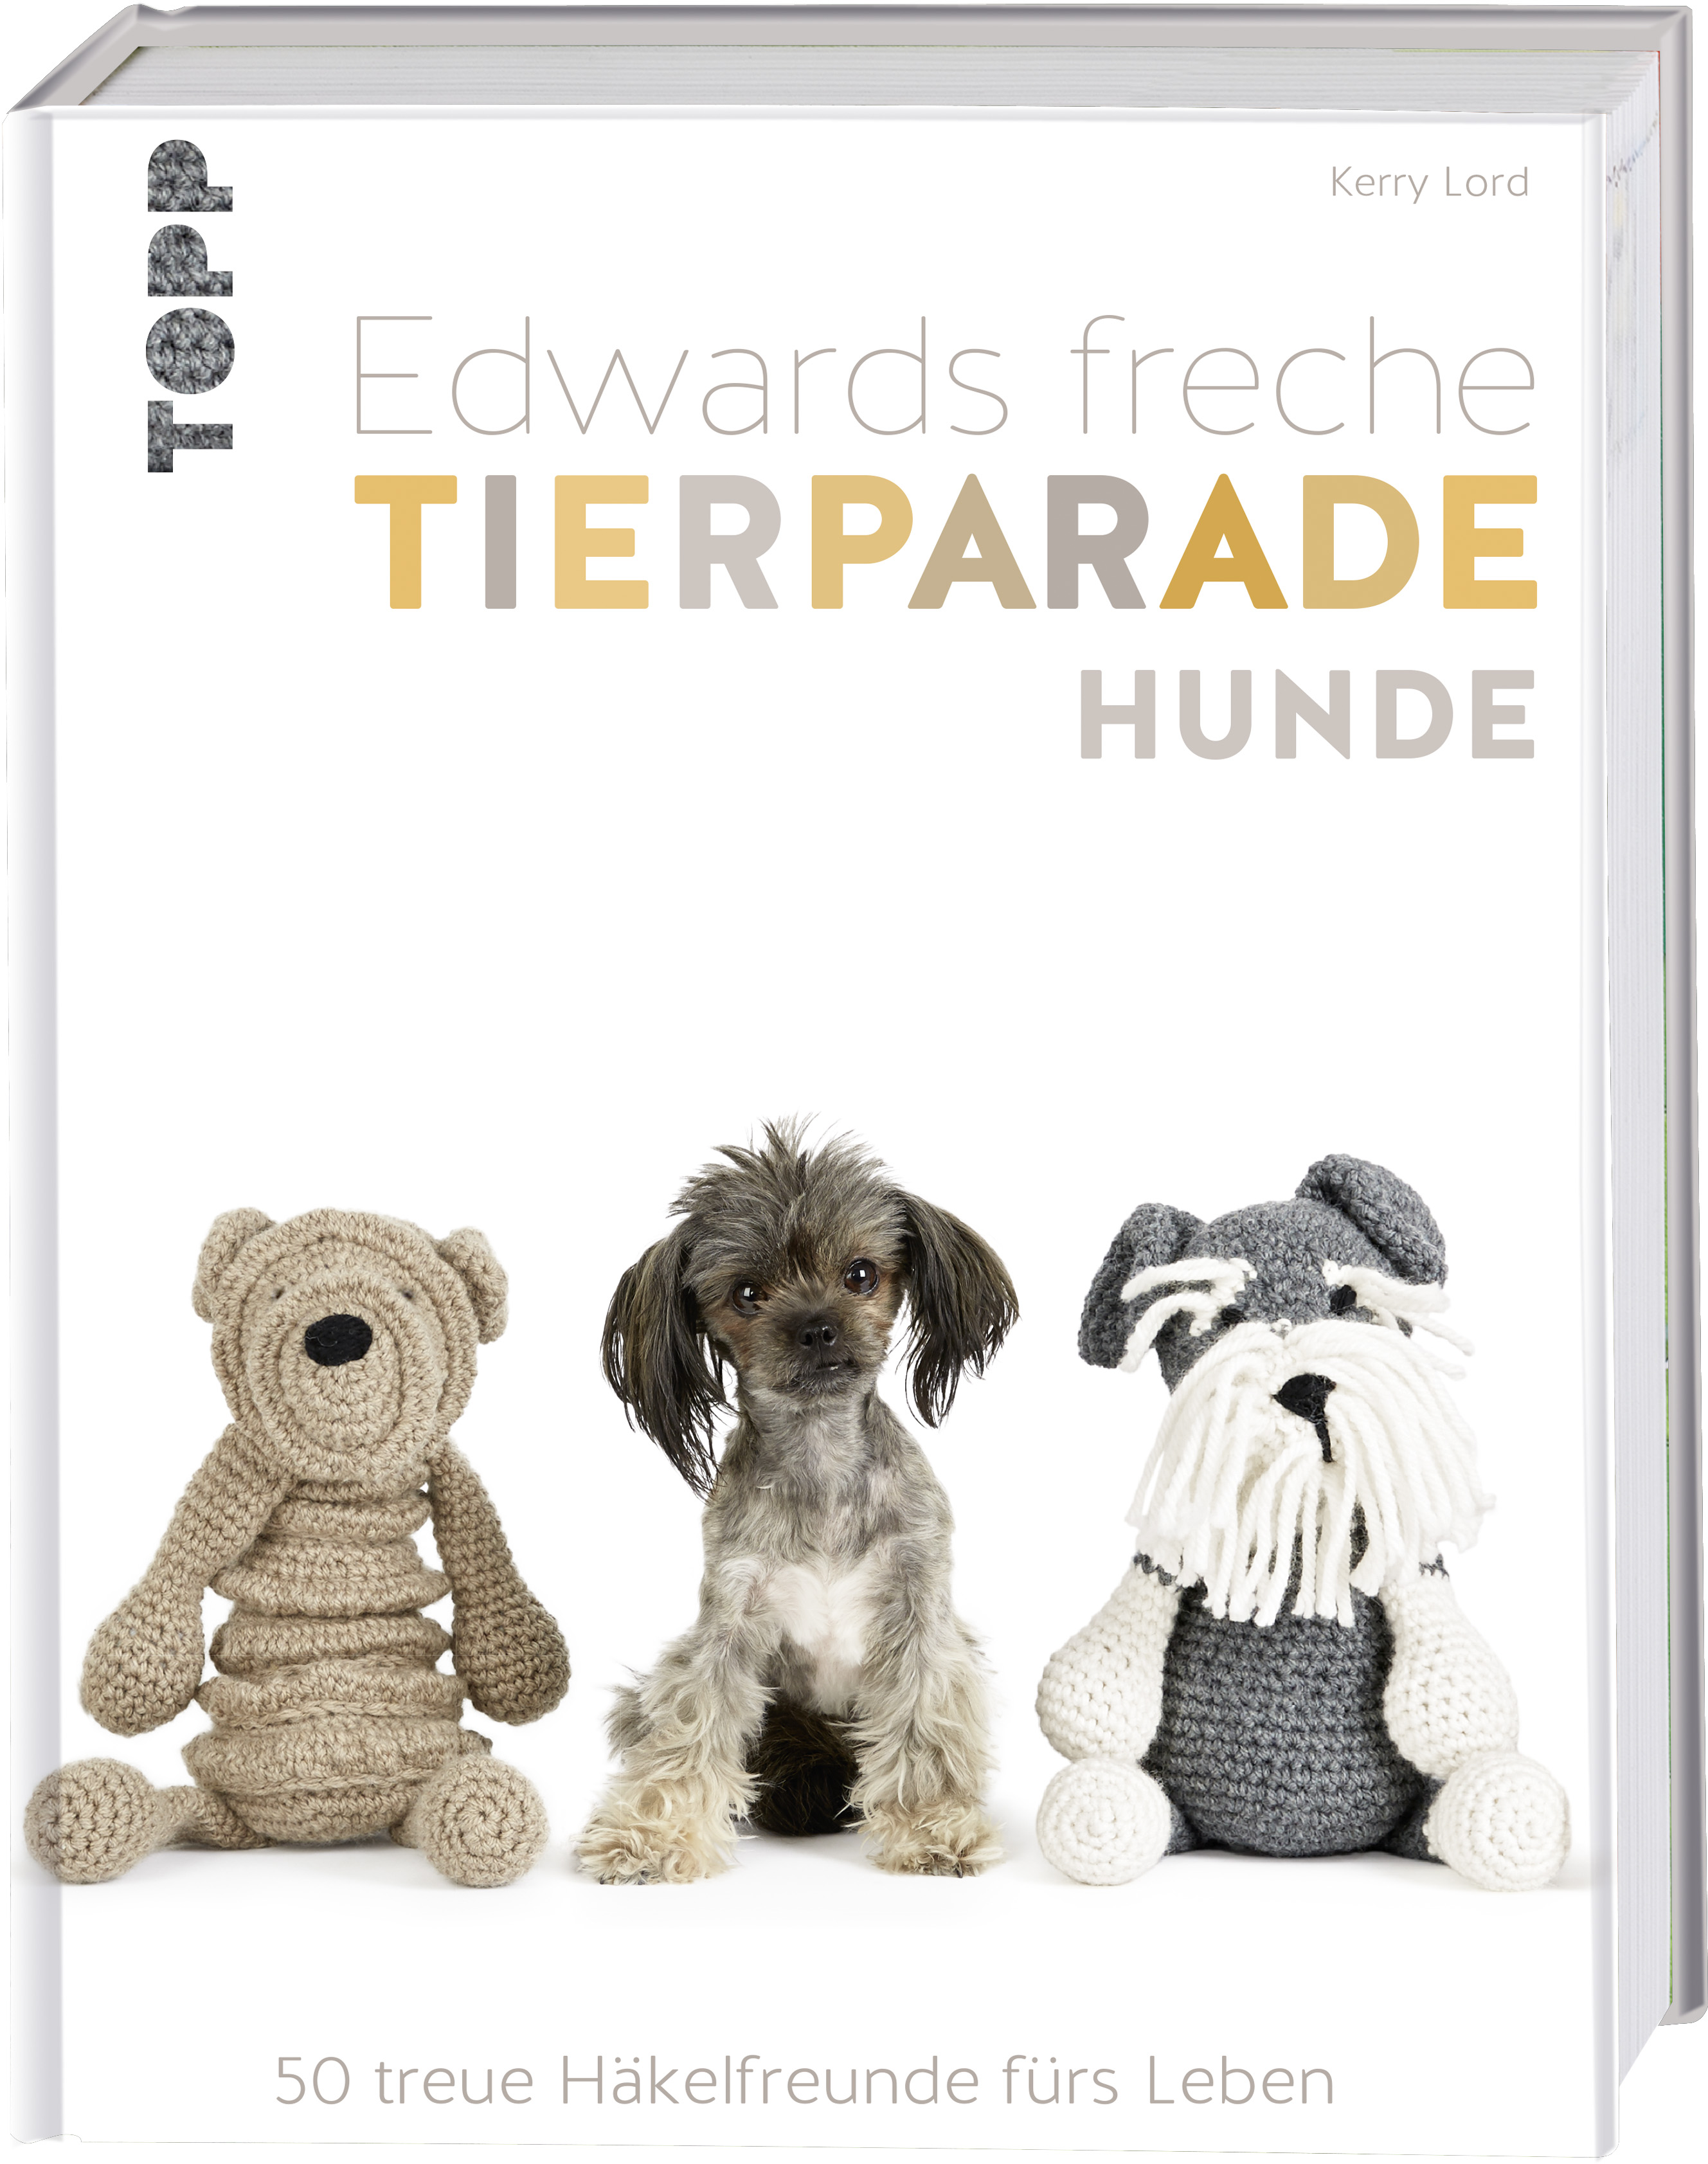 Edwards freche Tierparade Hunde (Kerry Lord)